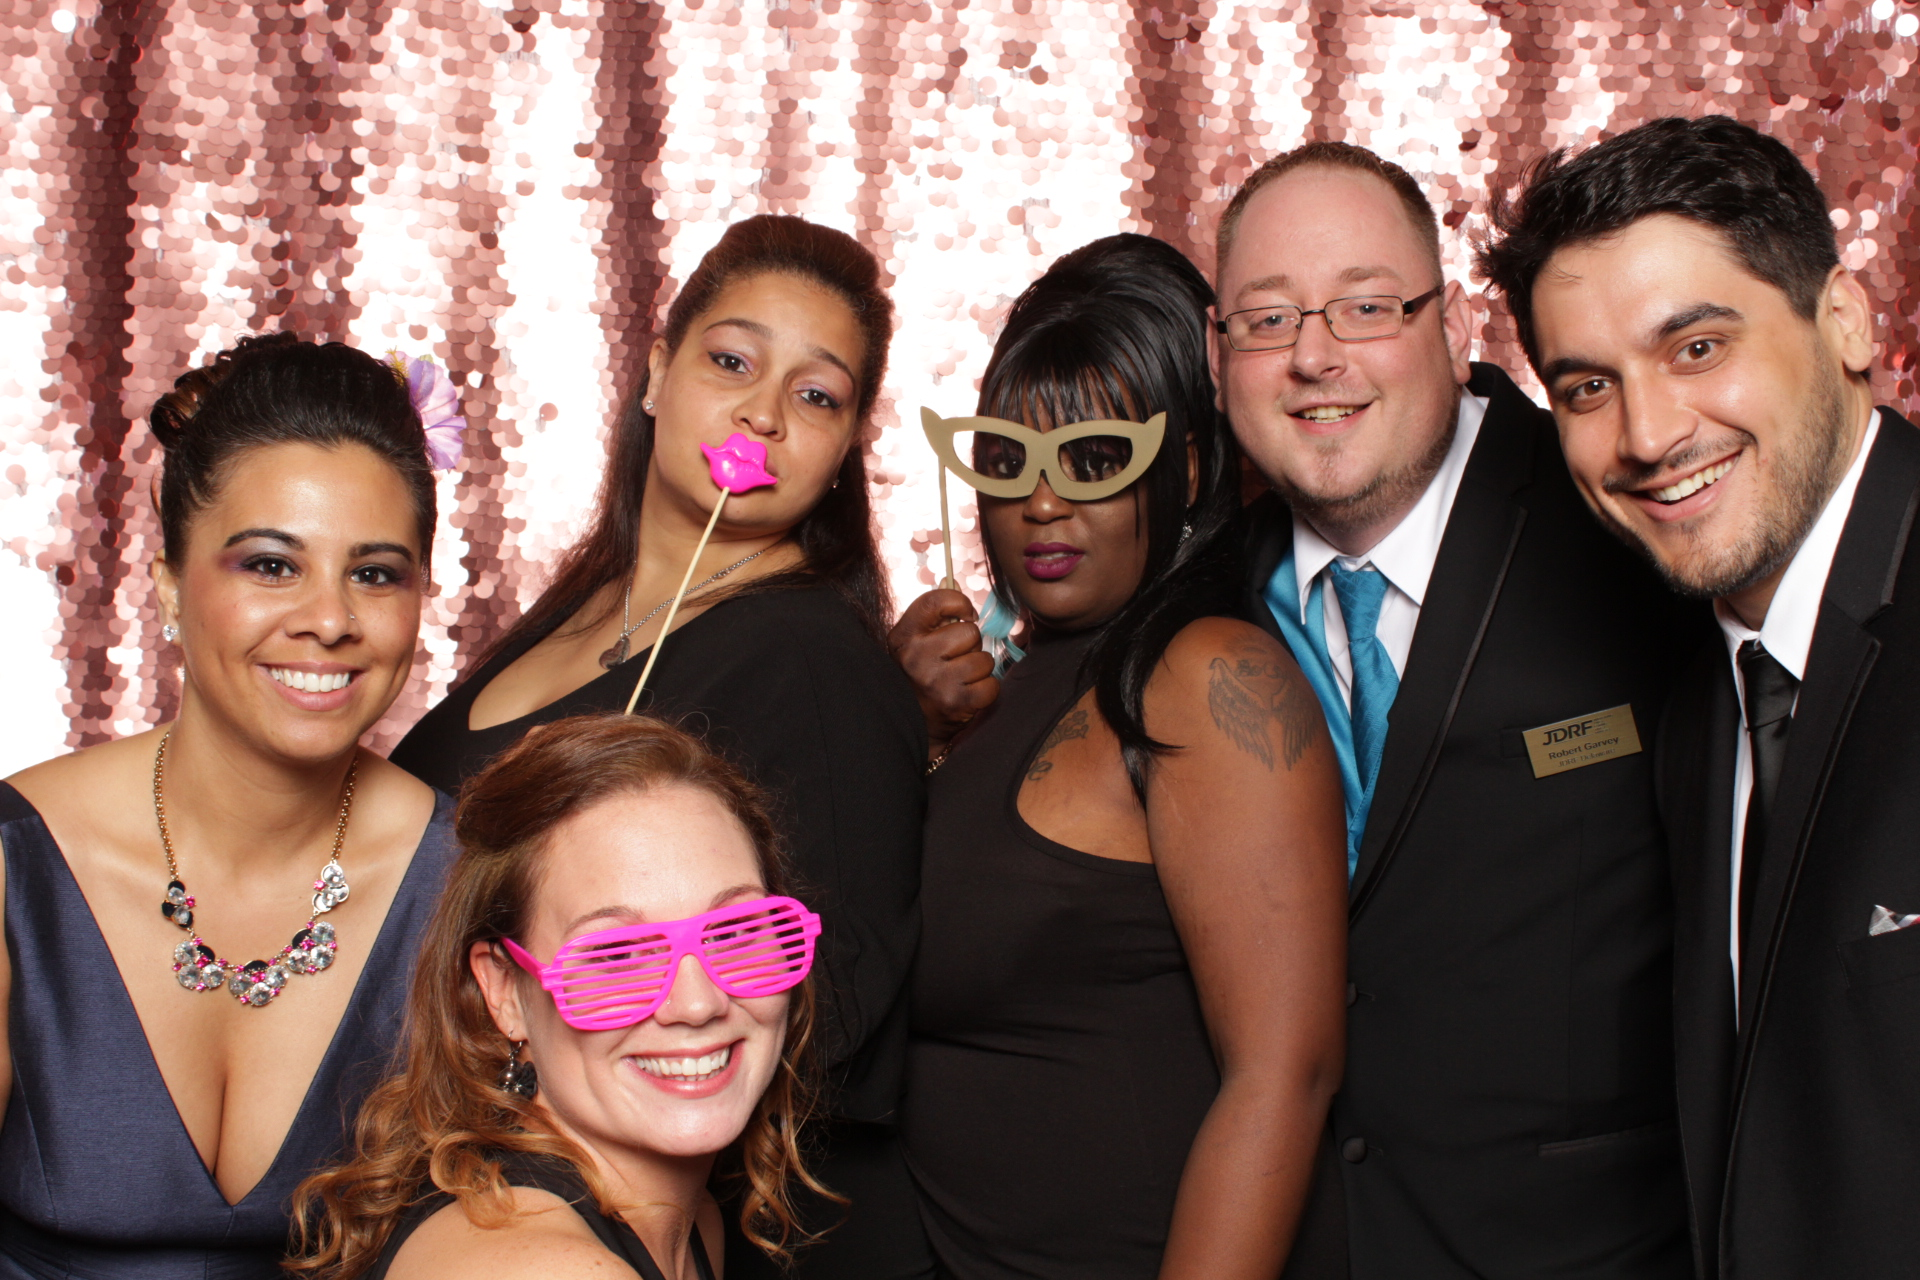 Top Delaware Photo Booth Rental